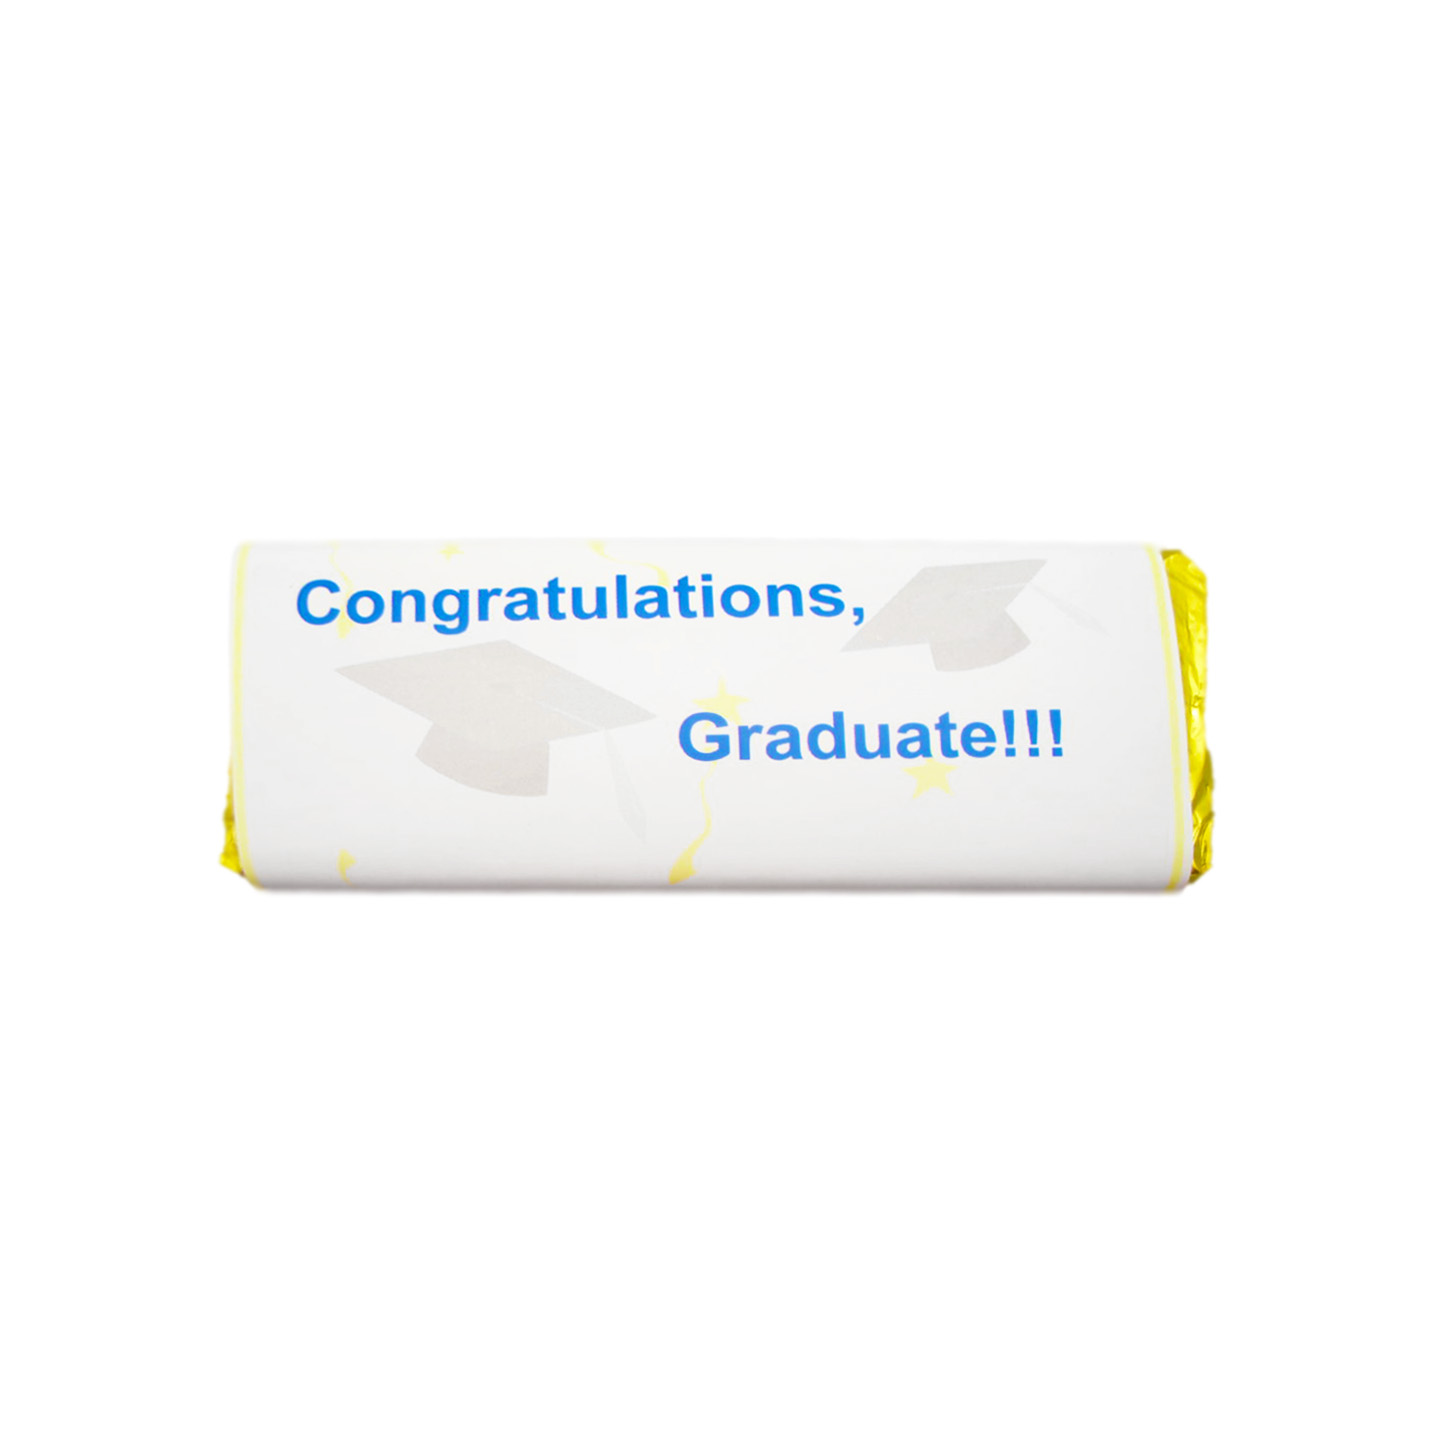 congrats graduate mortar board candy bar